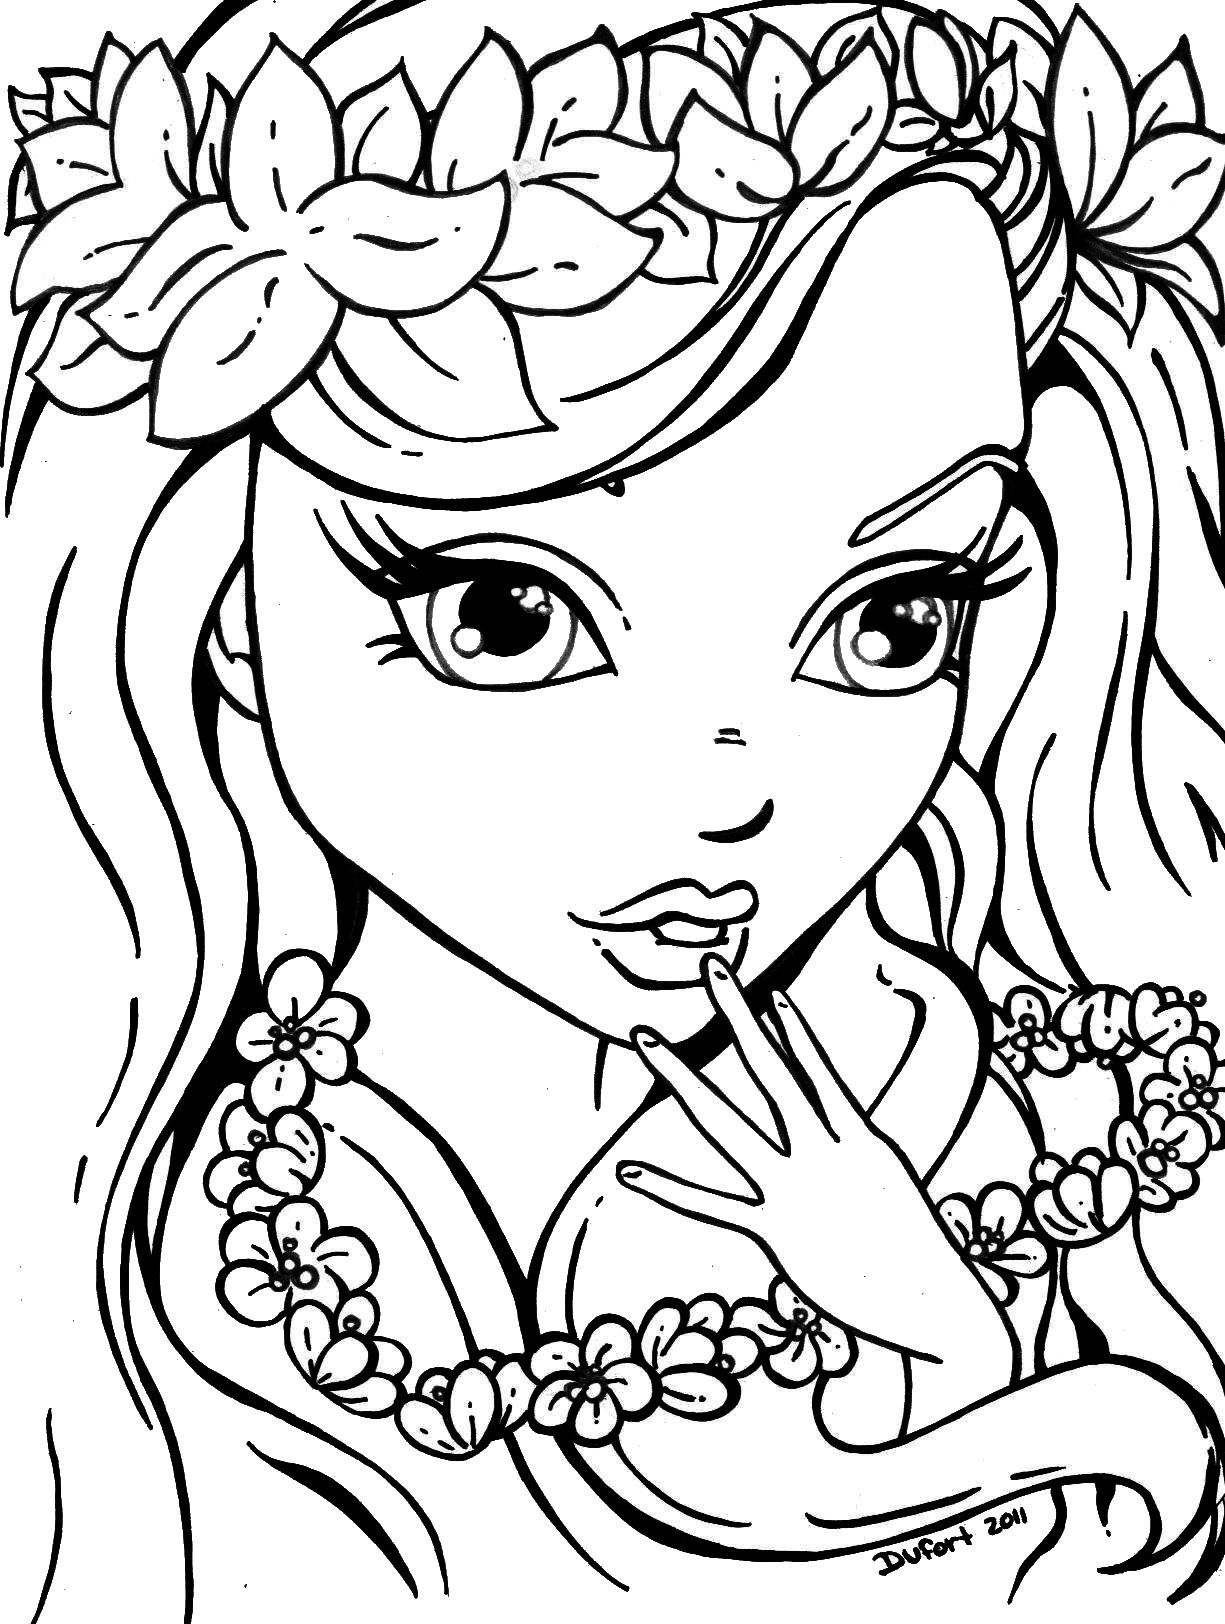 colering pages 10 toothy adult coloring pages printable off the cusp pages colering